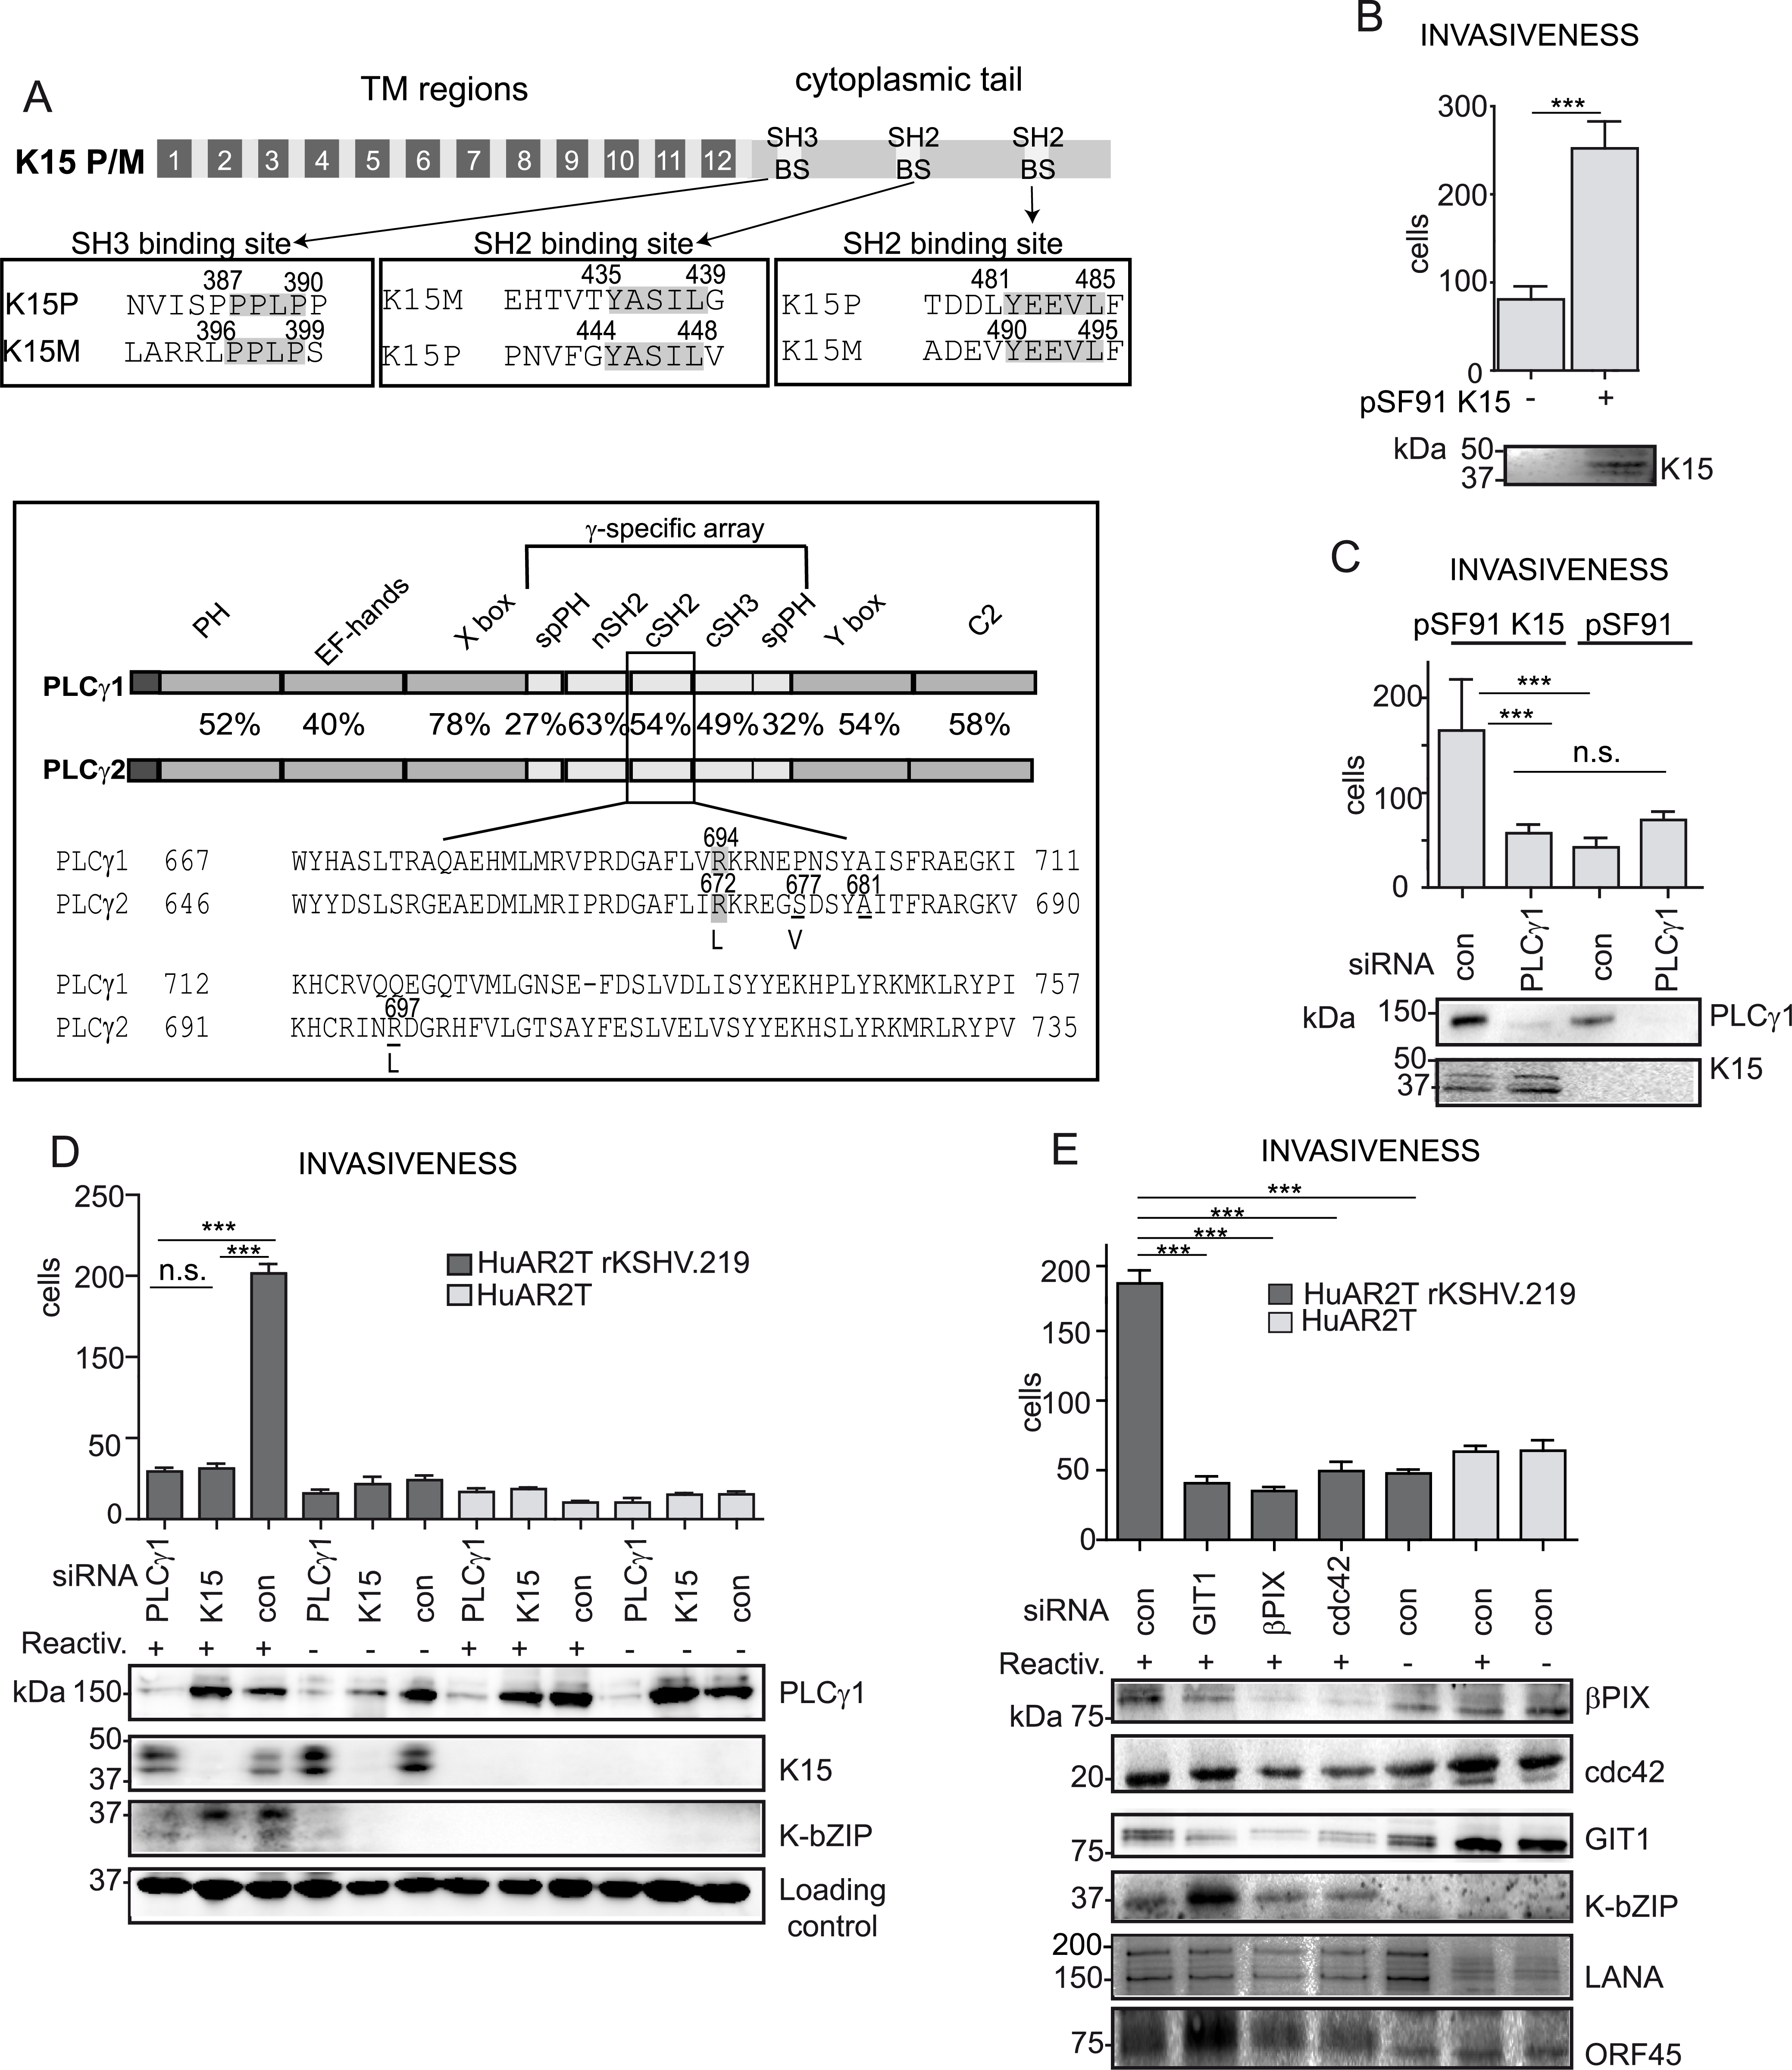 K15 confers invasiveness to KSHV infected endothelial cells in a PLCγ1-dependent manner.